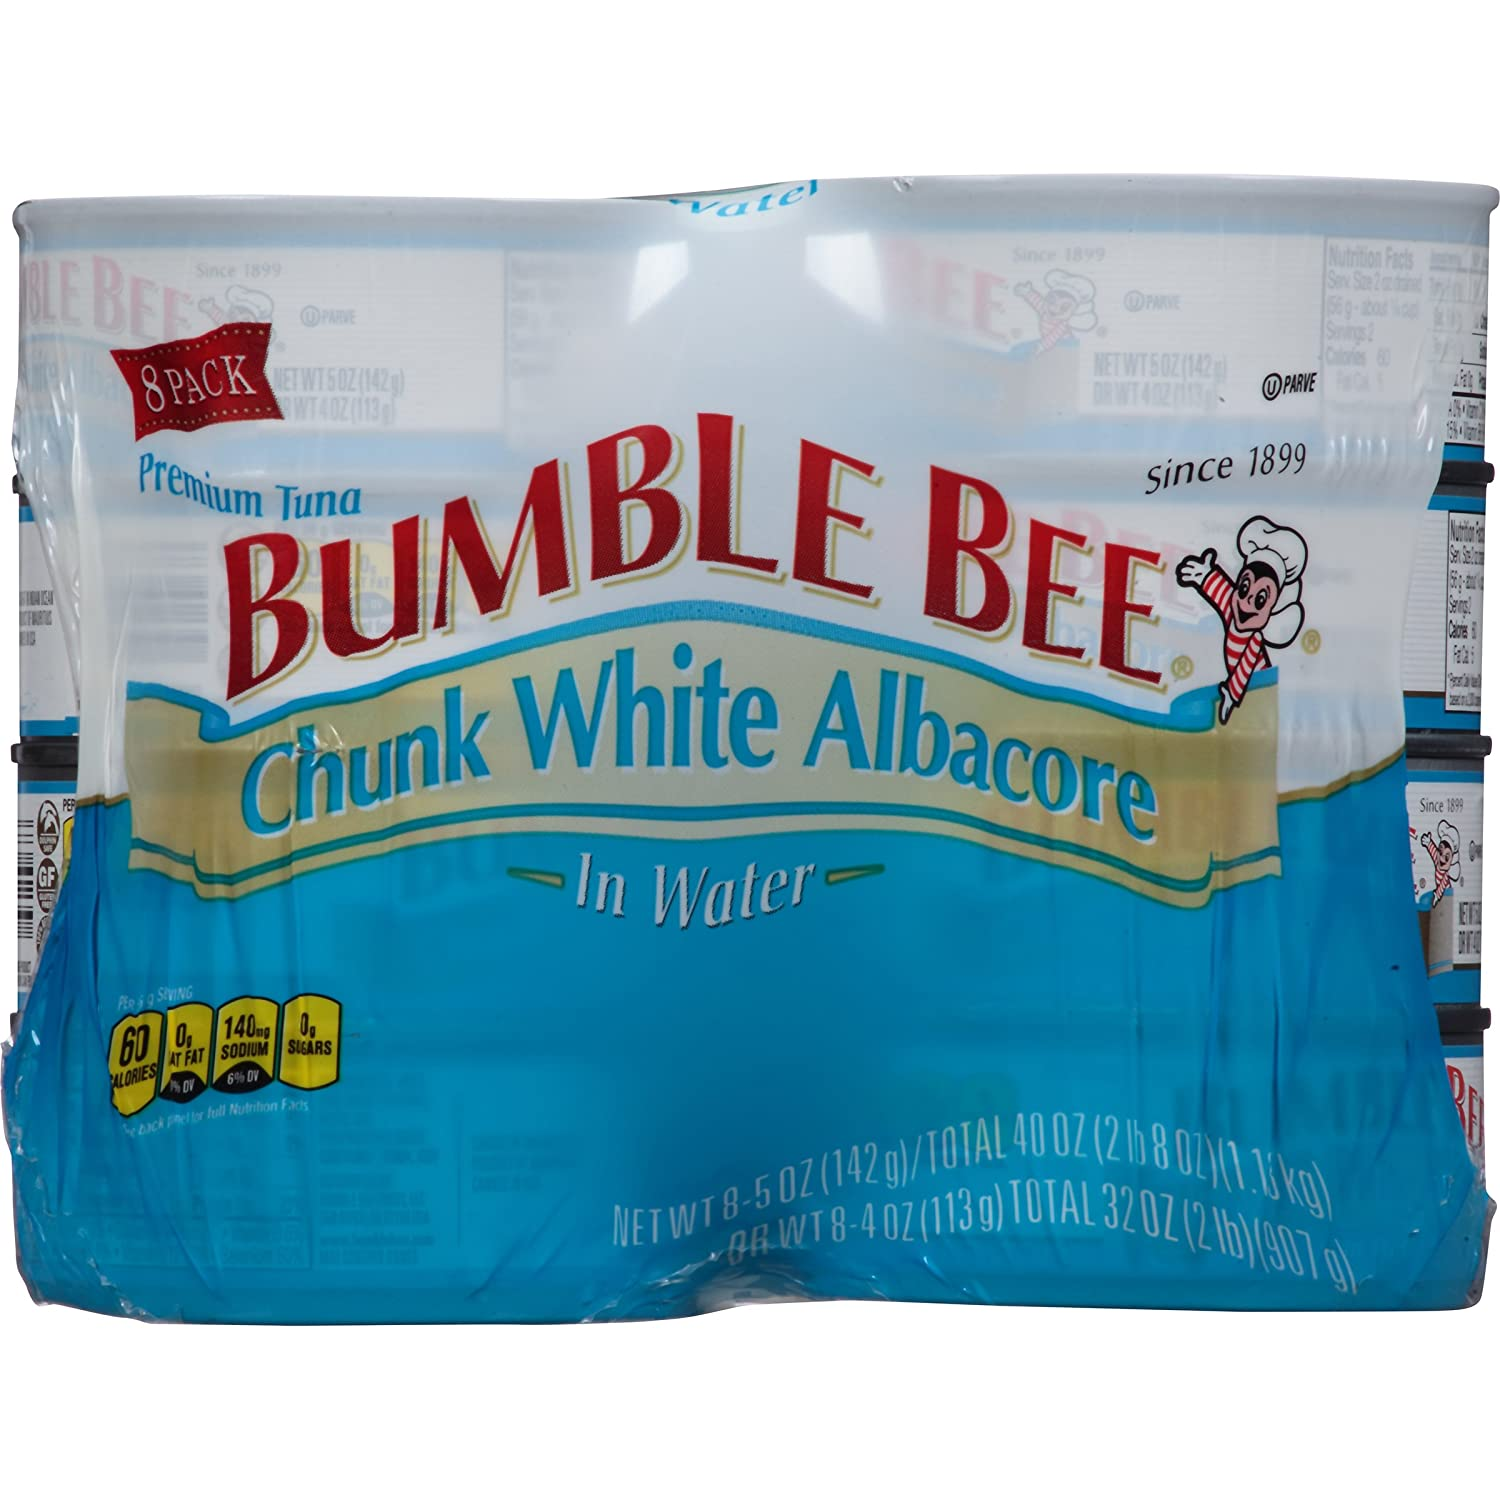 Bumble Bee Chunk White Albacore Tuna in Water, 5 oz, 8 Count